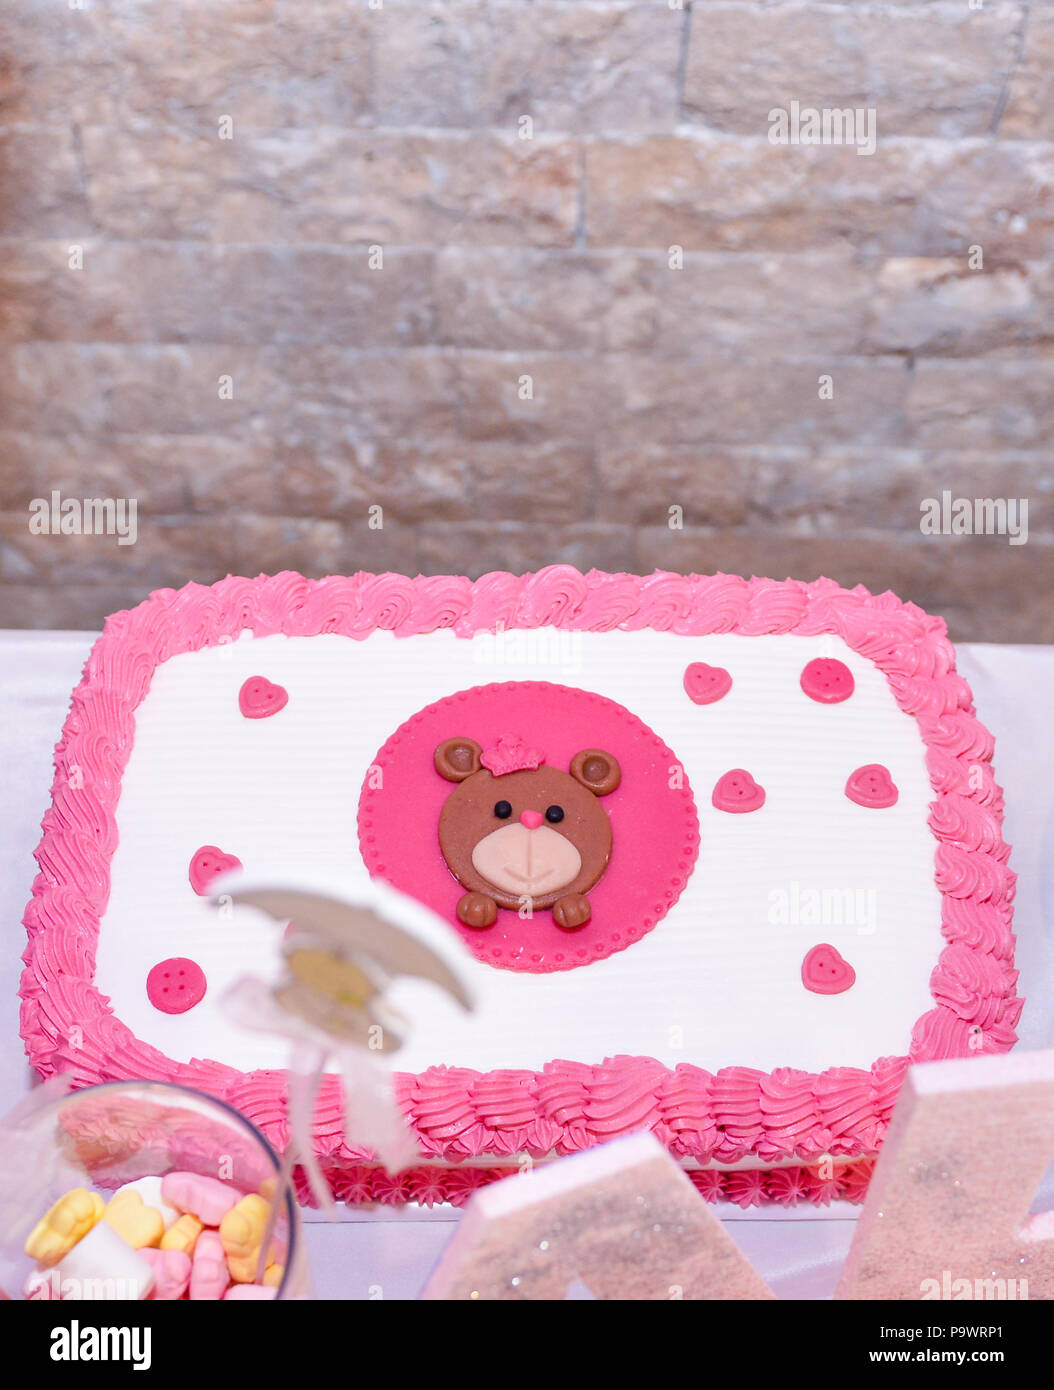 Tremendous Baby Girl First Birthday Cake With Teddy Bear Image Of A Stock Funny Birthday Cards Online Hendilapandamsfinfo